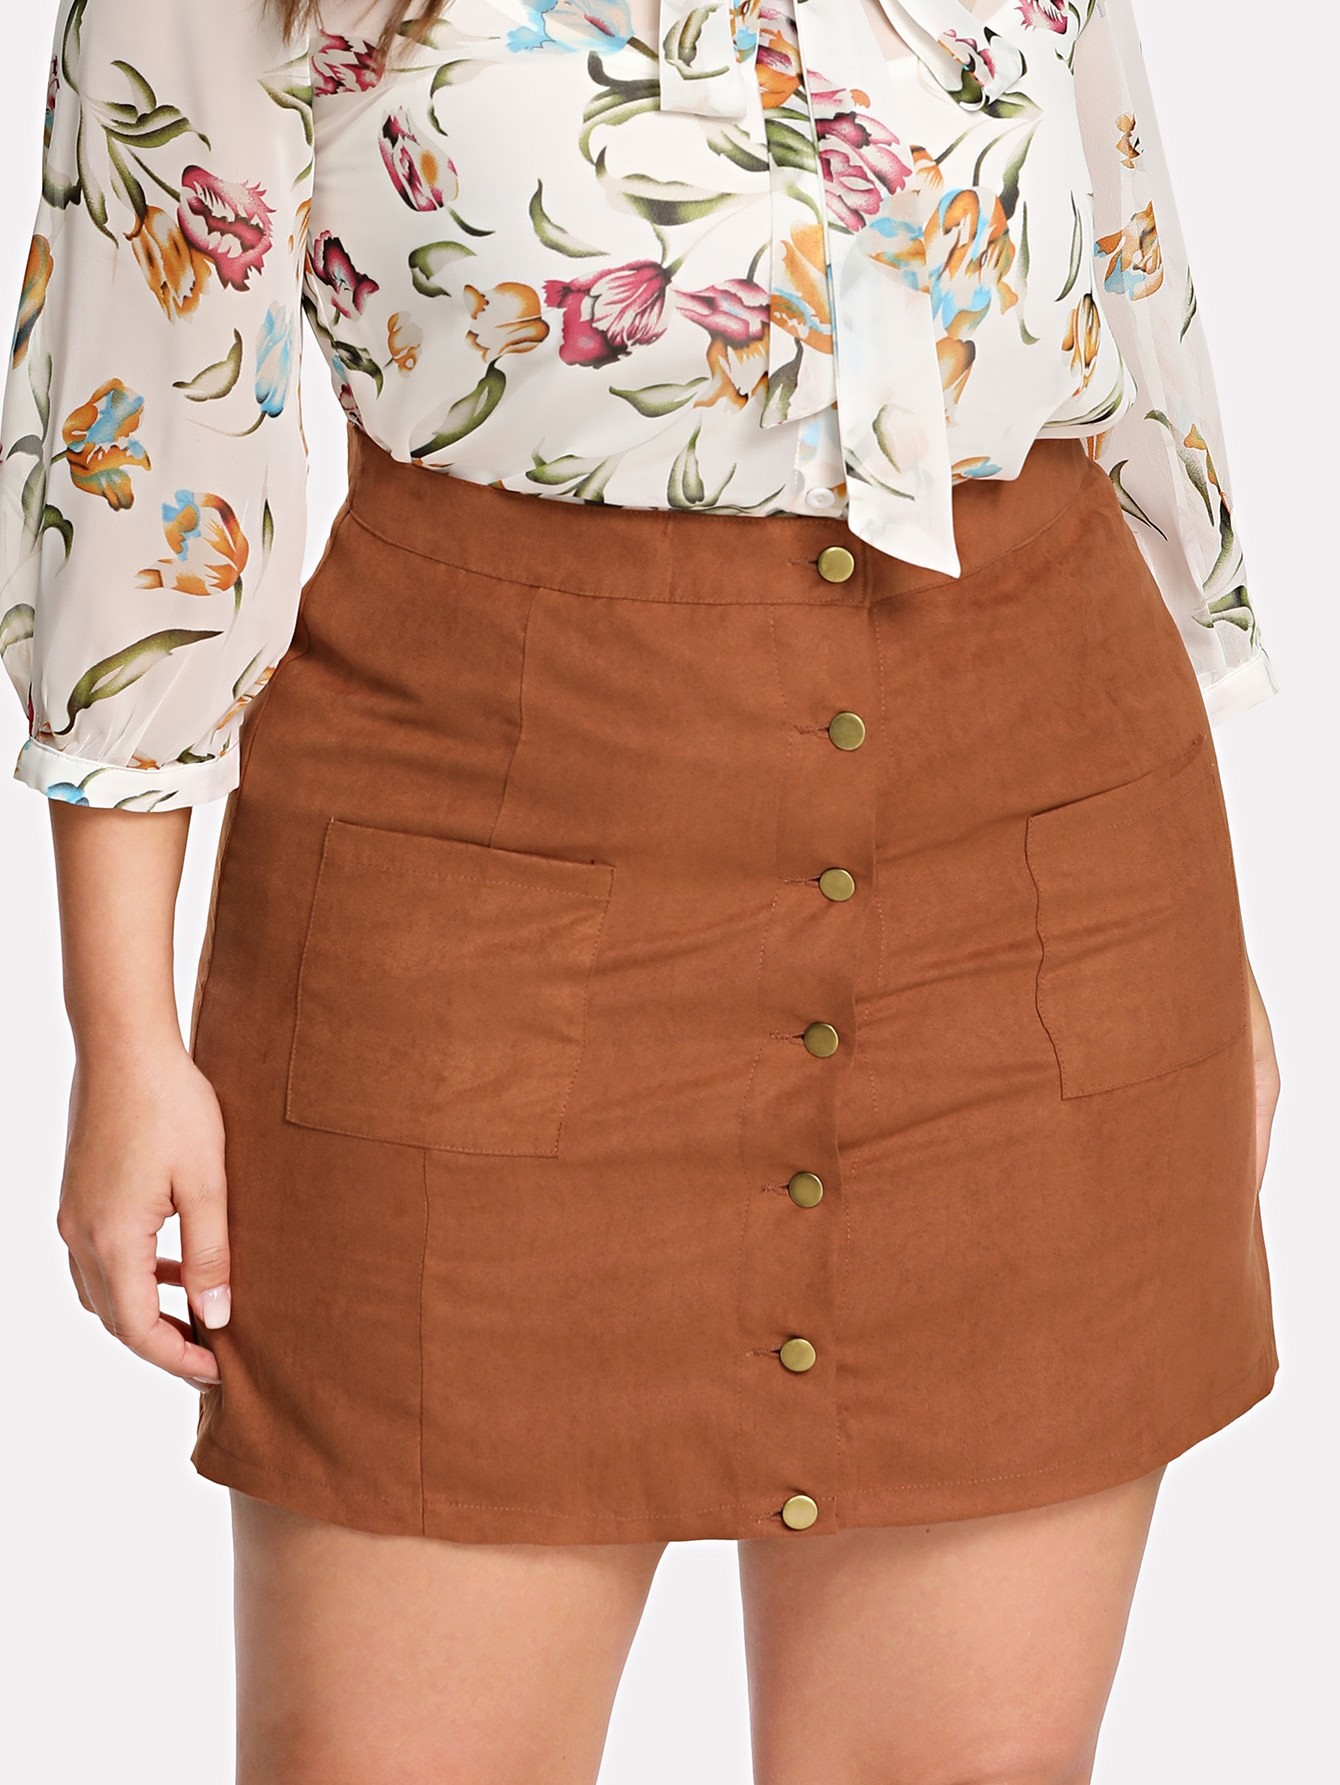 Button Up Front Pocket Patched Skirt high waist pocket patched dot skirt